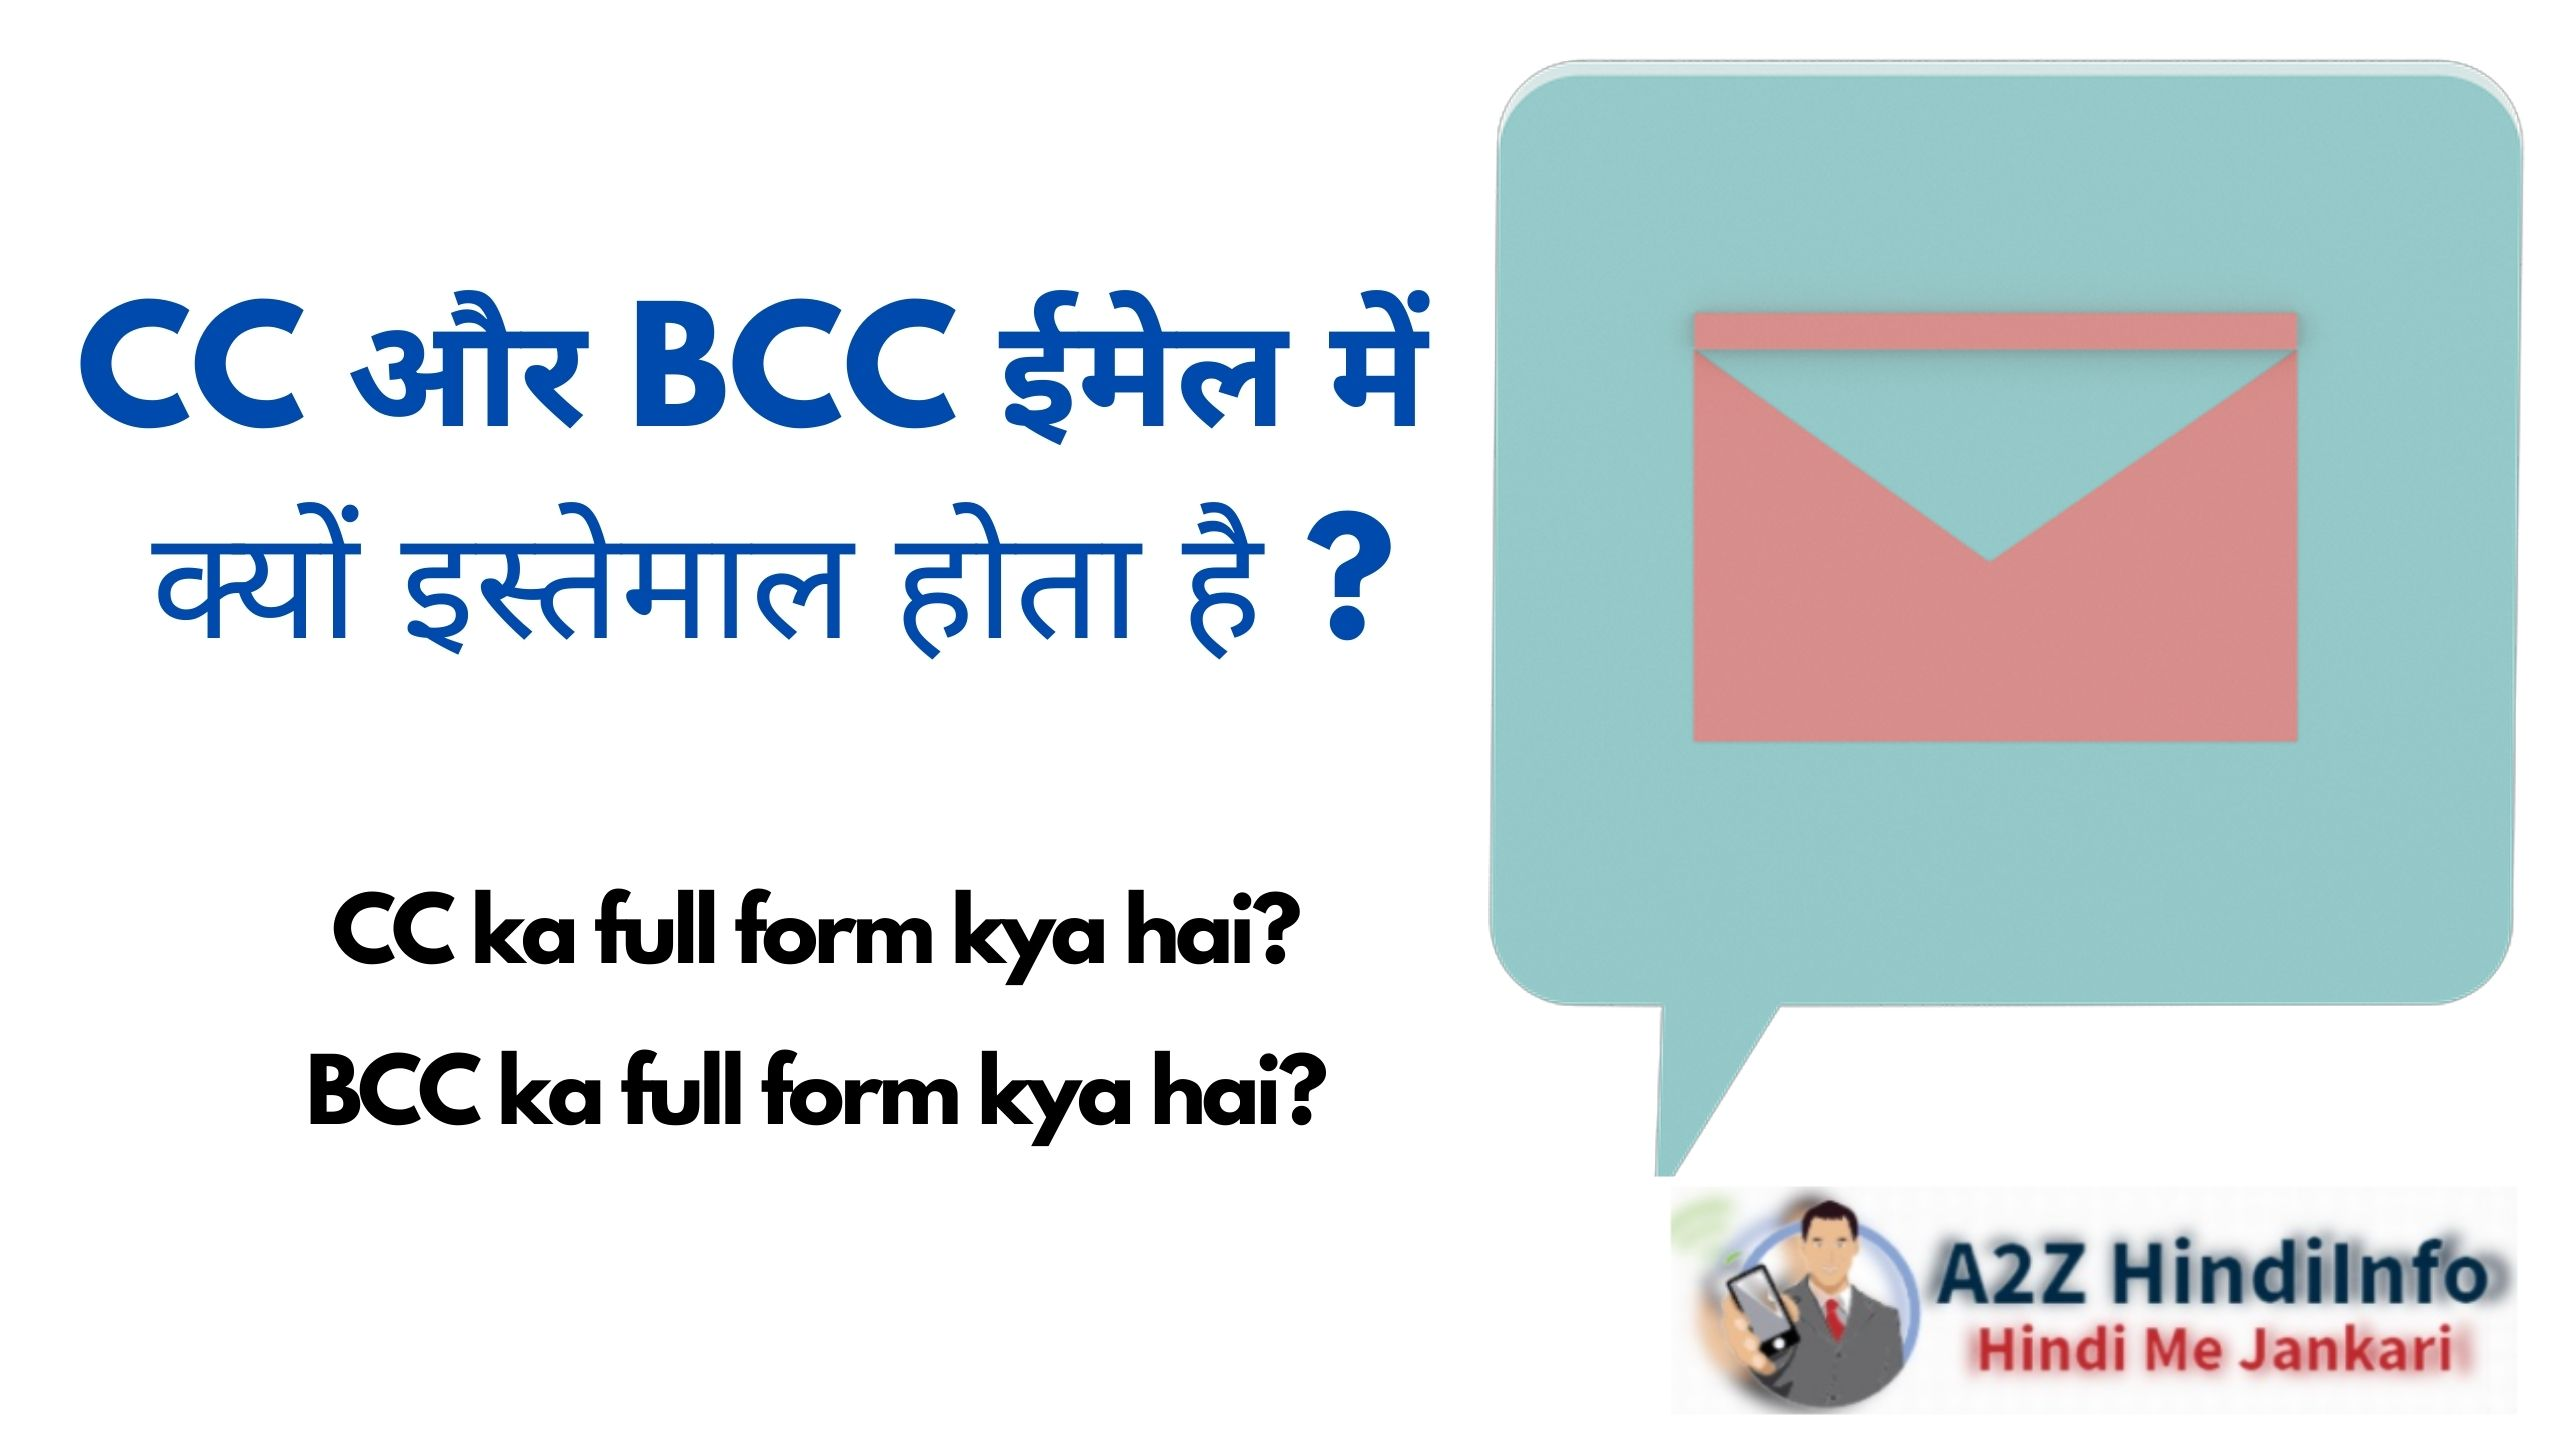 CC full form aur BCC ka full form kya hai